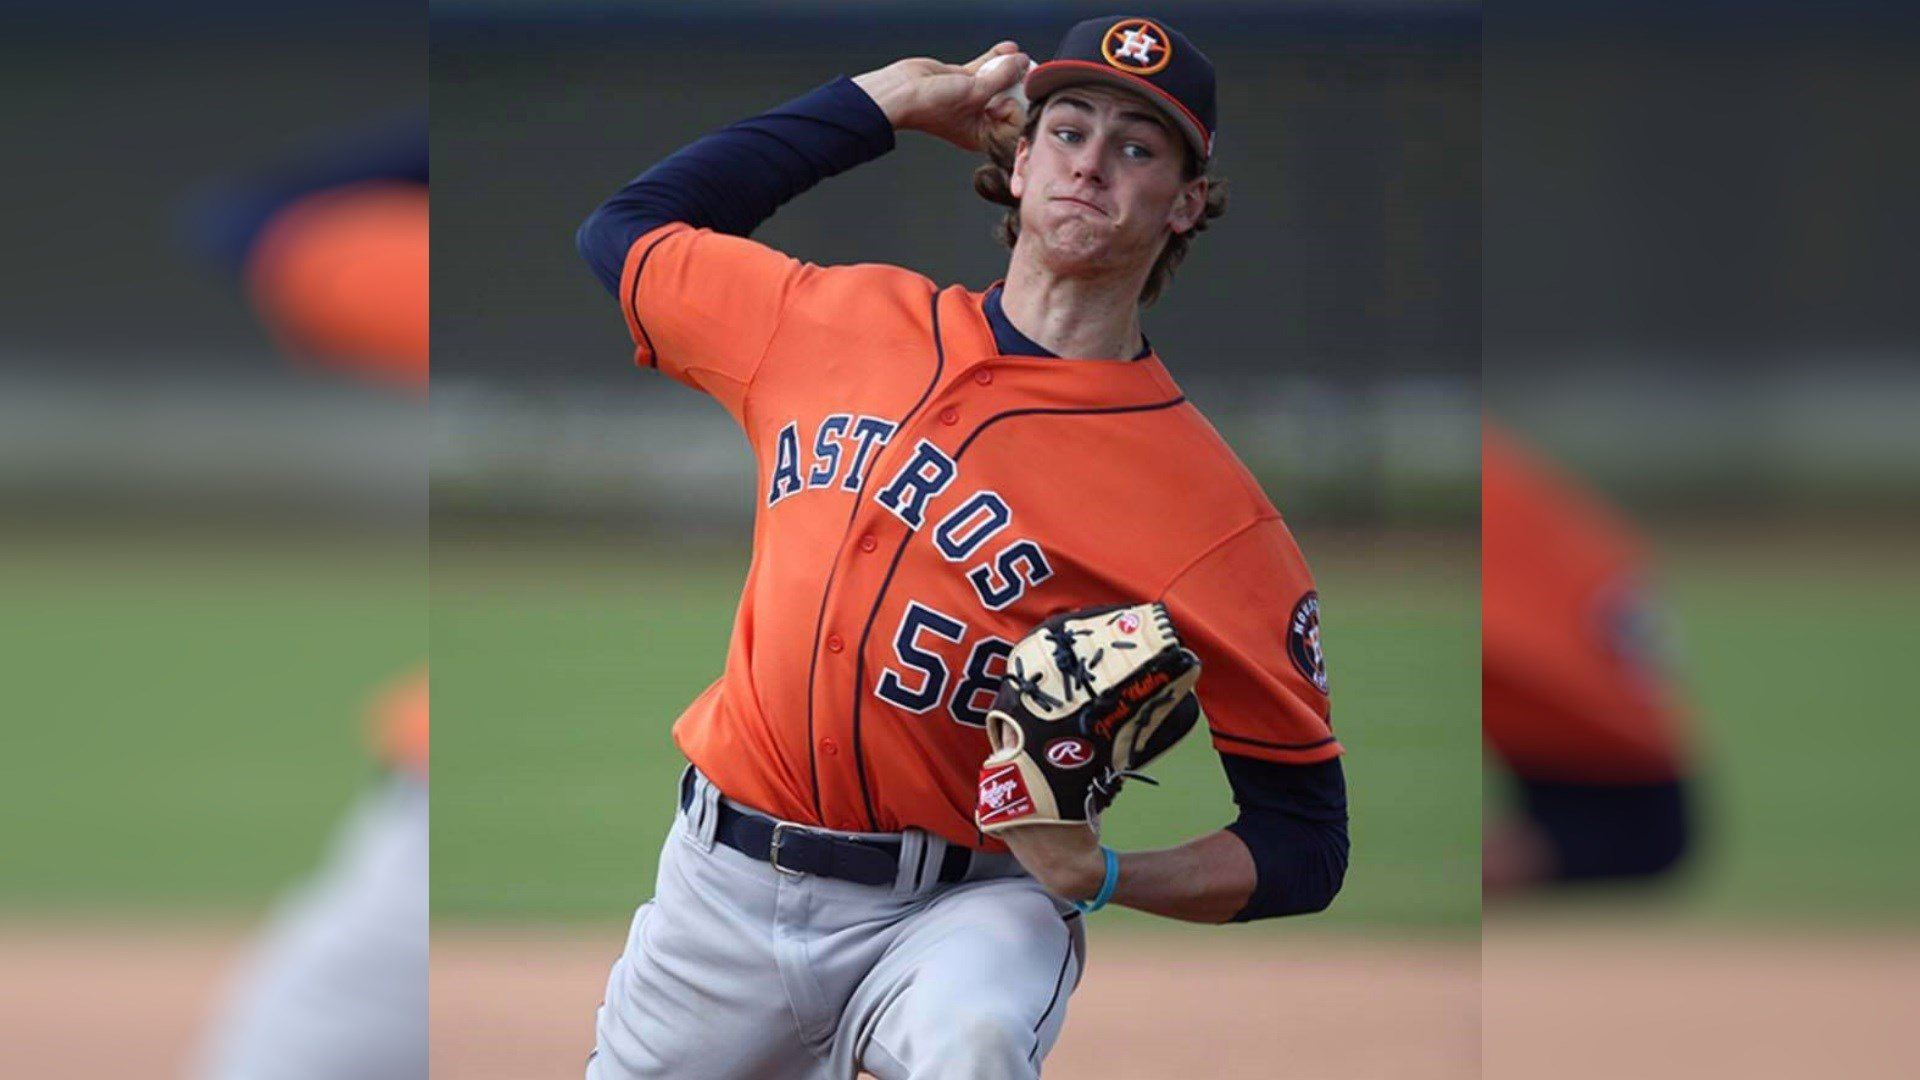 Houston Astros Top Prospect Forrest Whitley Suspended 50-Game For PED Use